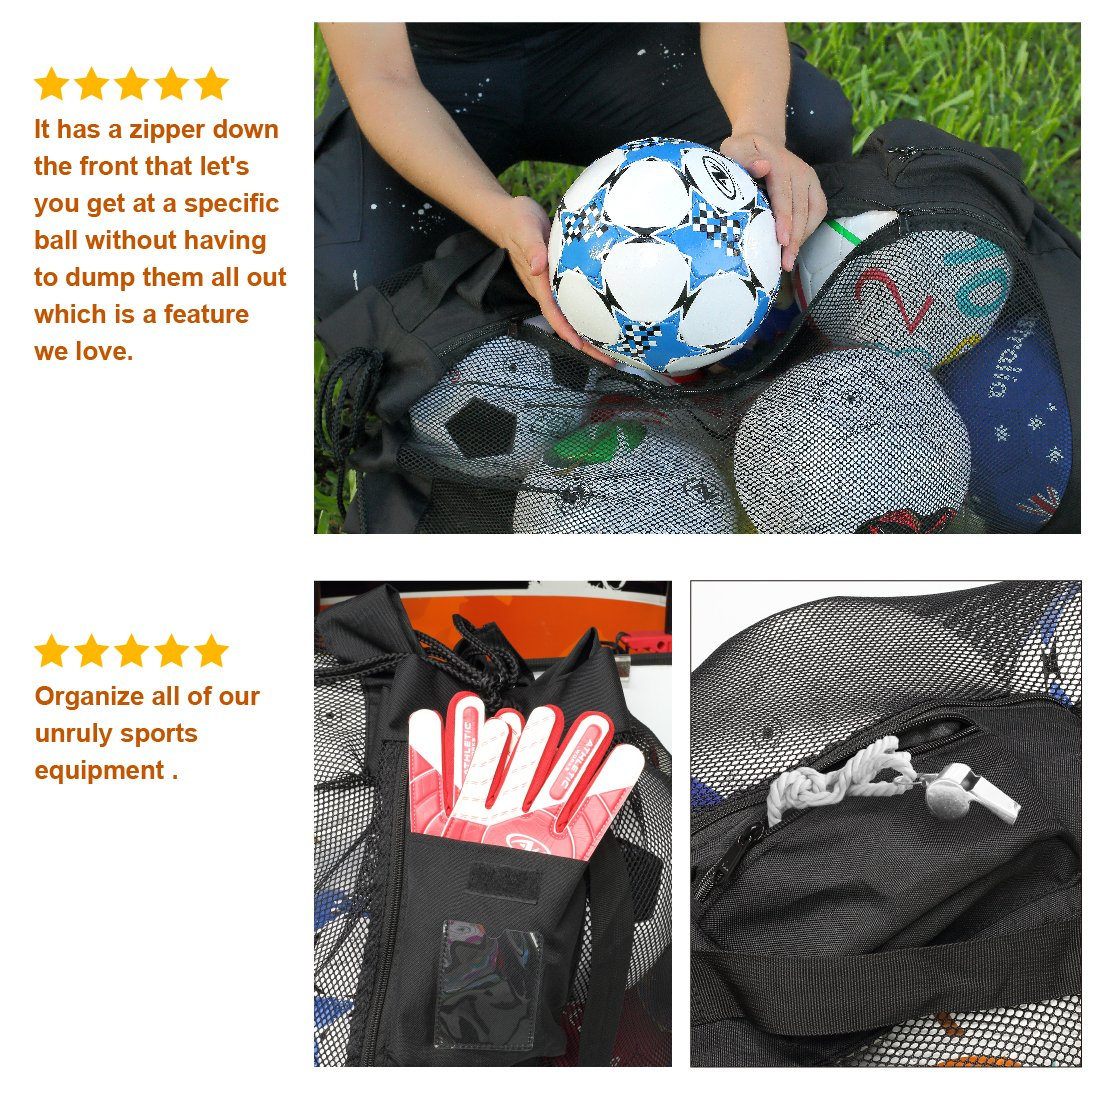 PP PICADOR Mesh Equipment Bag for Soccer Ball Drawstring and Zipper, Sports Mesh Ball Bag Oversize Duffle Reinforced Bottom Folding Portable by PP PICADOR (Image #2)